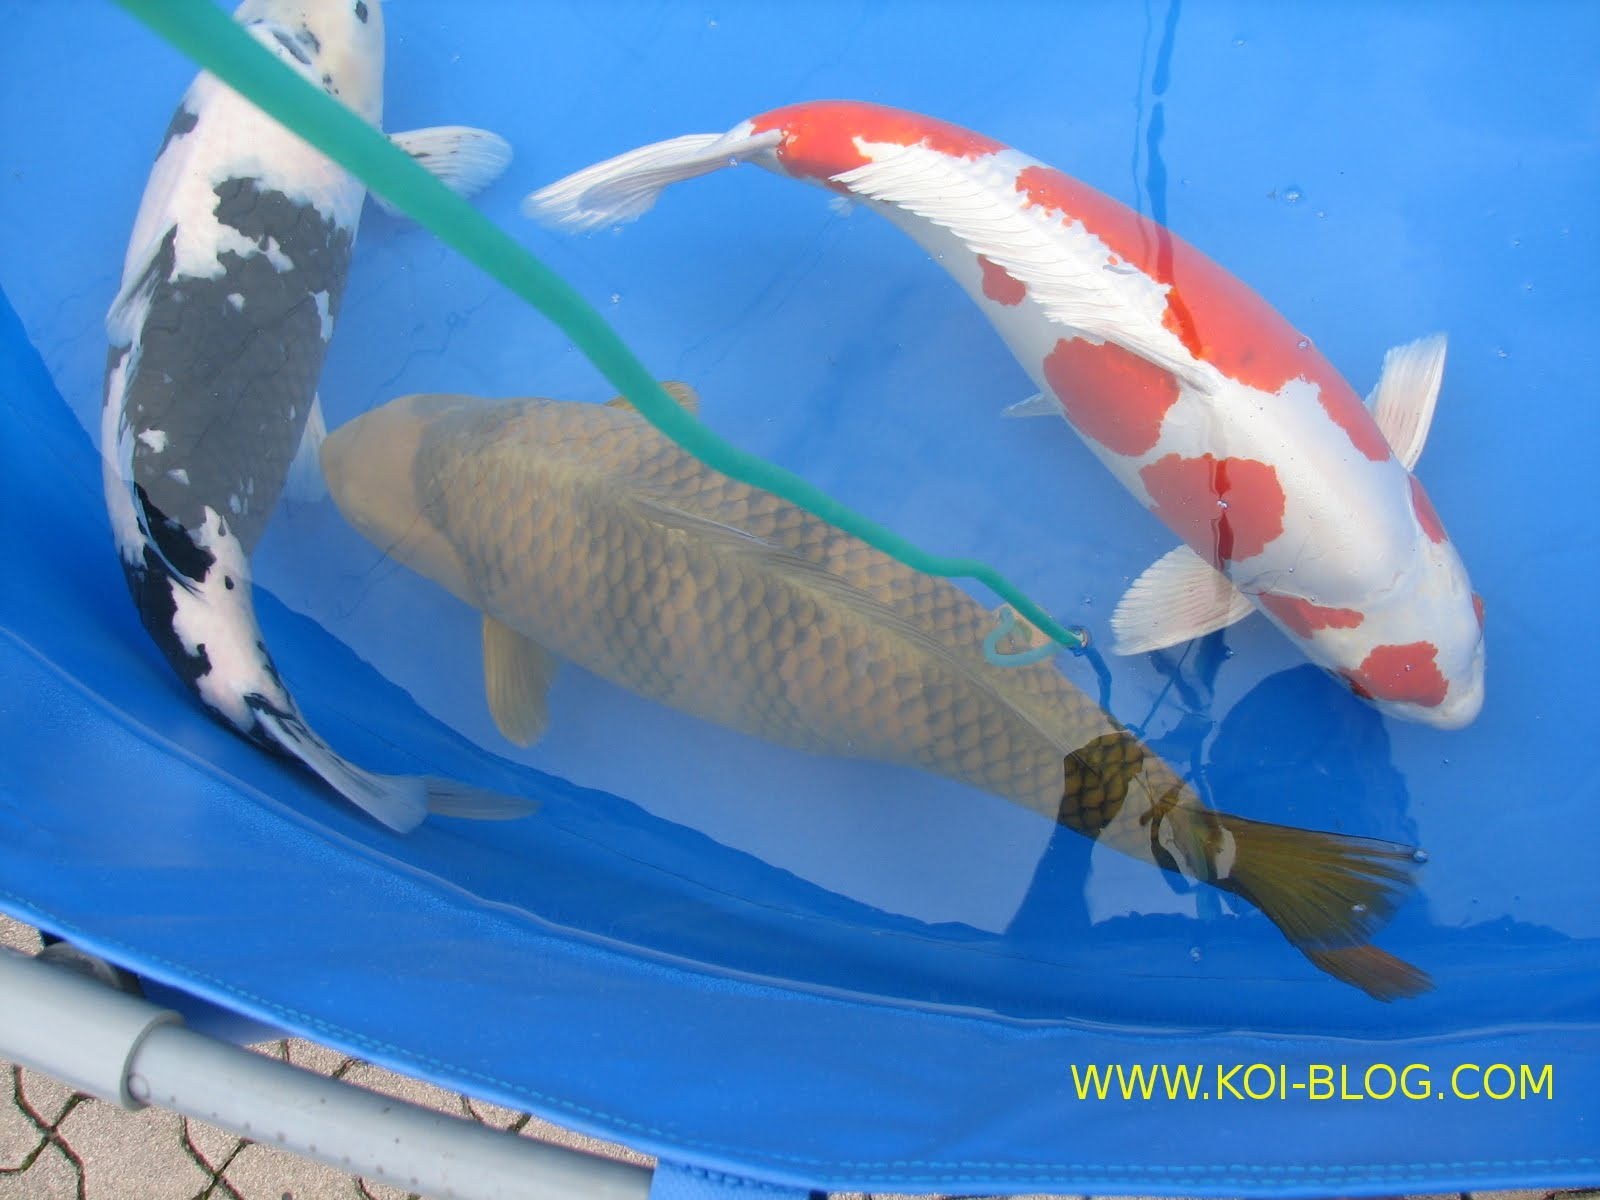 Koi blog chagoi utsuri for Rare koi fish